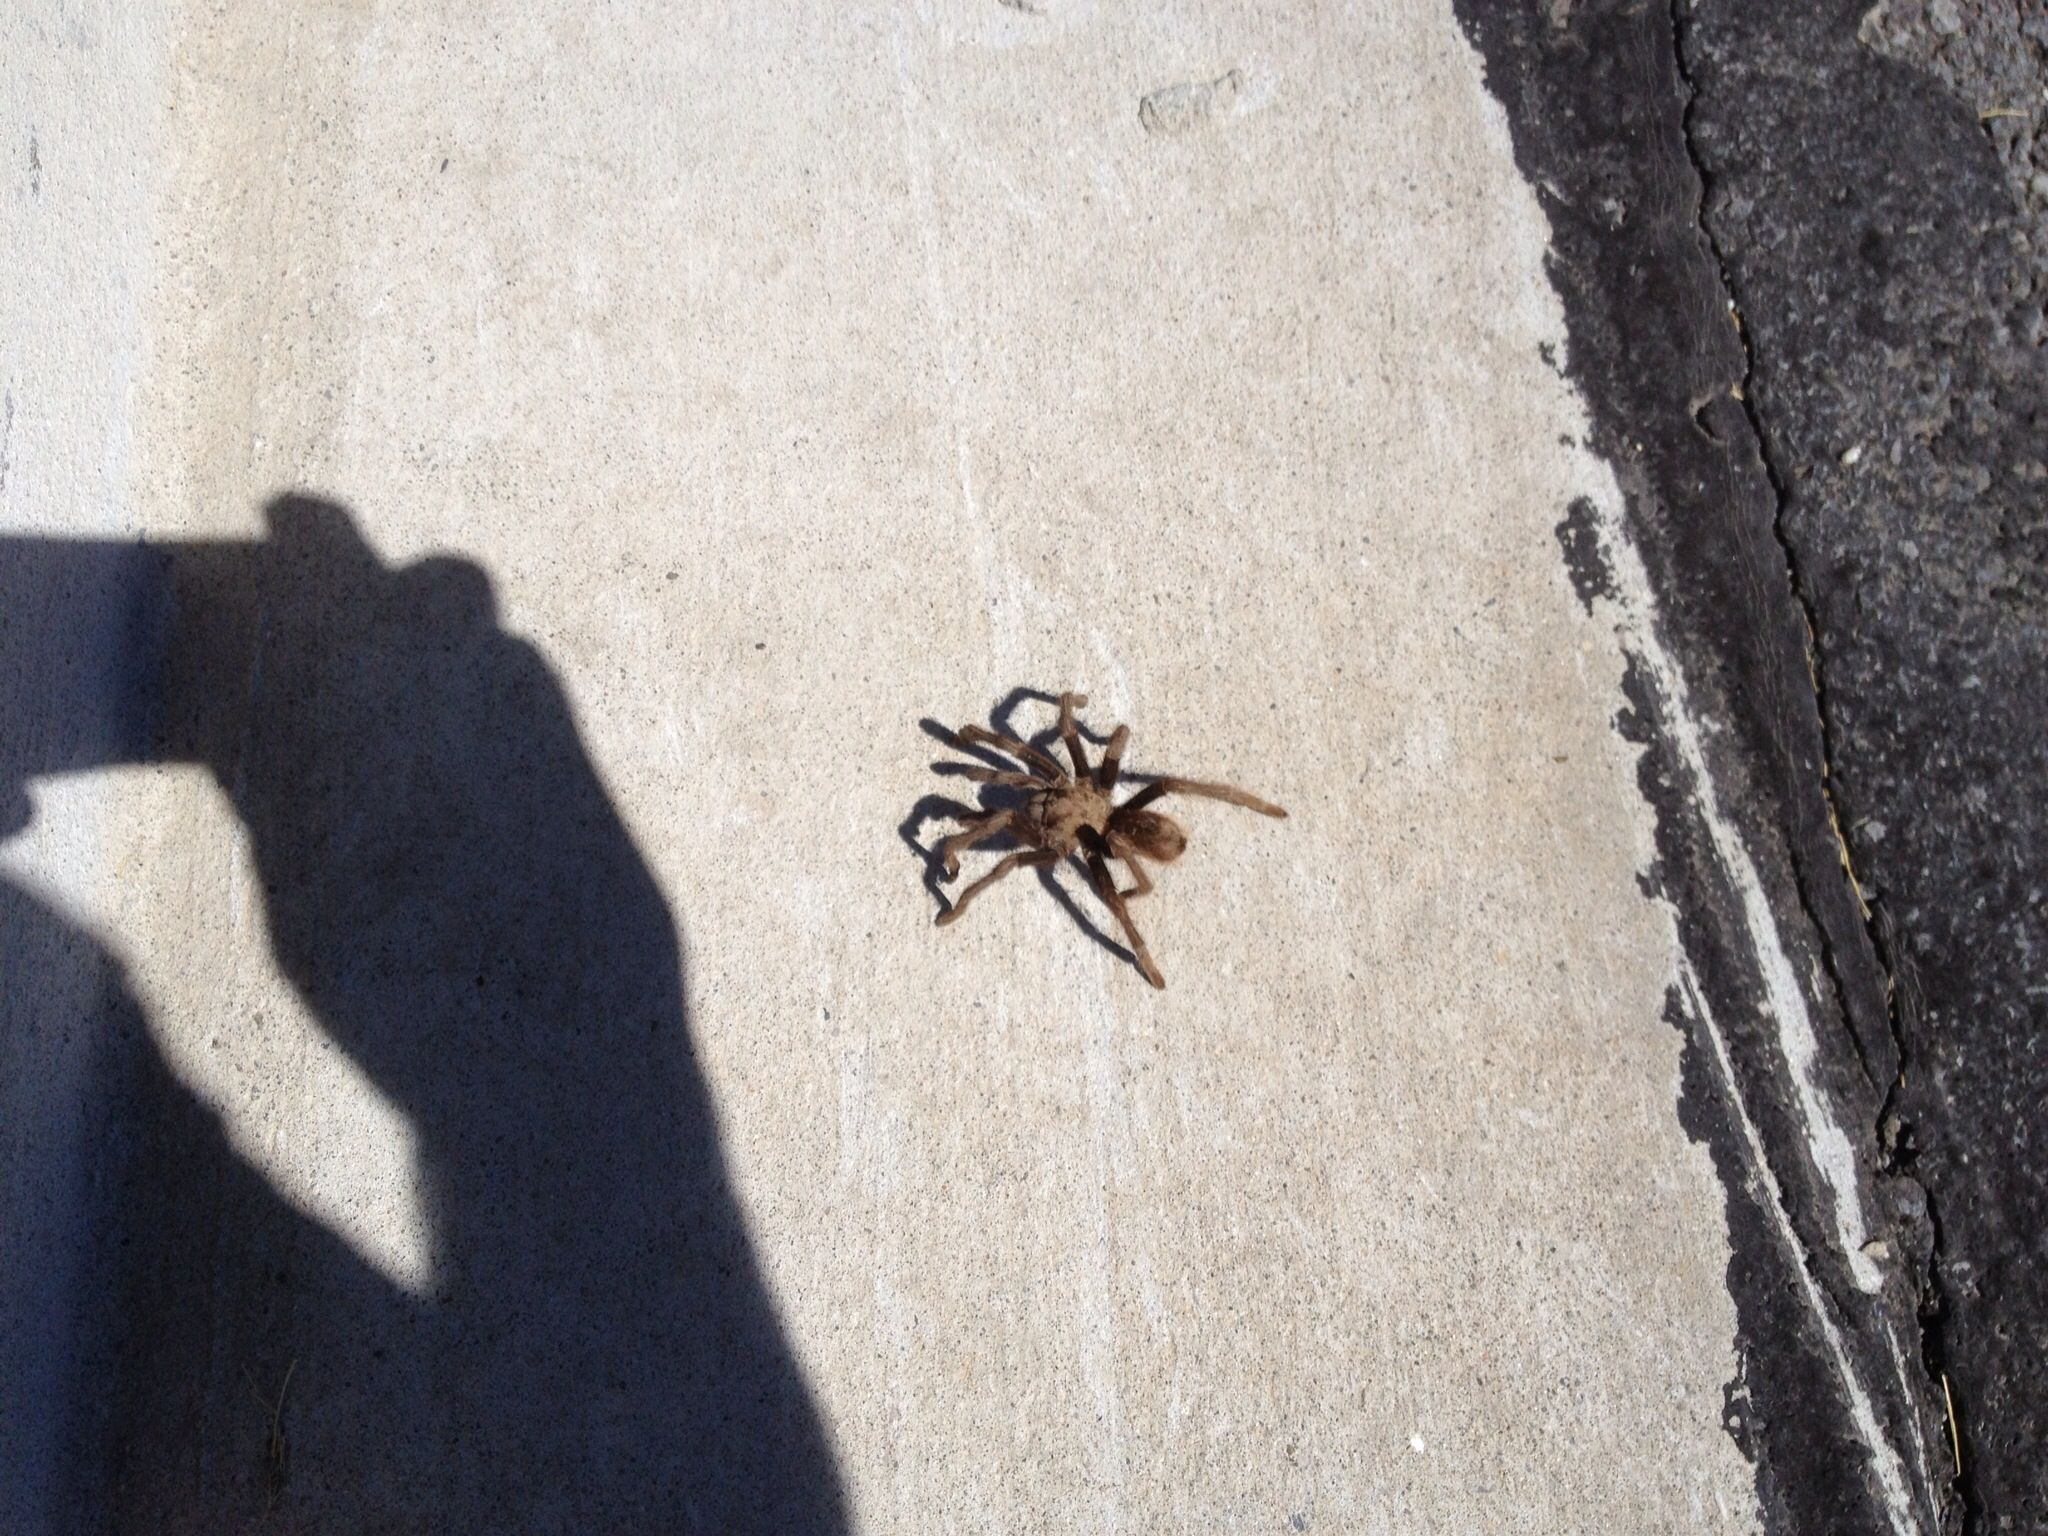 That is a spider the size of my foot